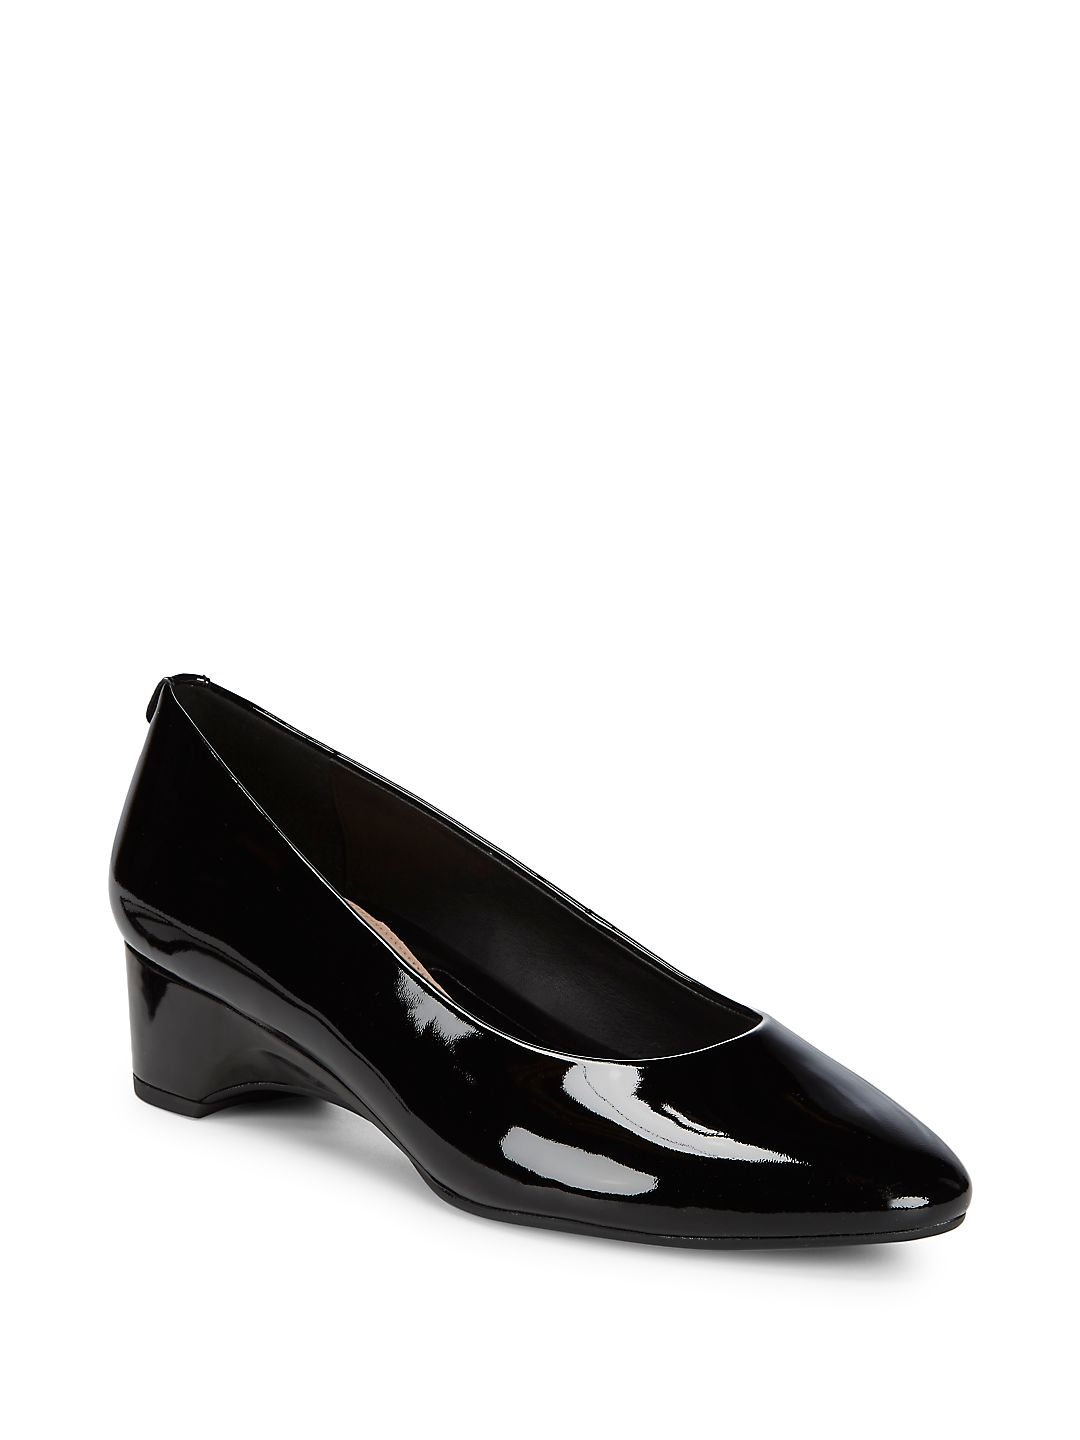 Babs Patent Leather Demi-Wedge Pumps